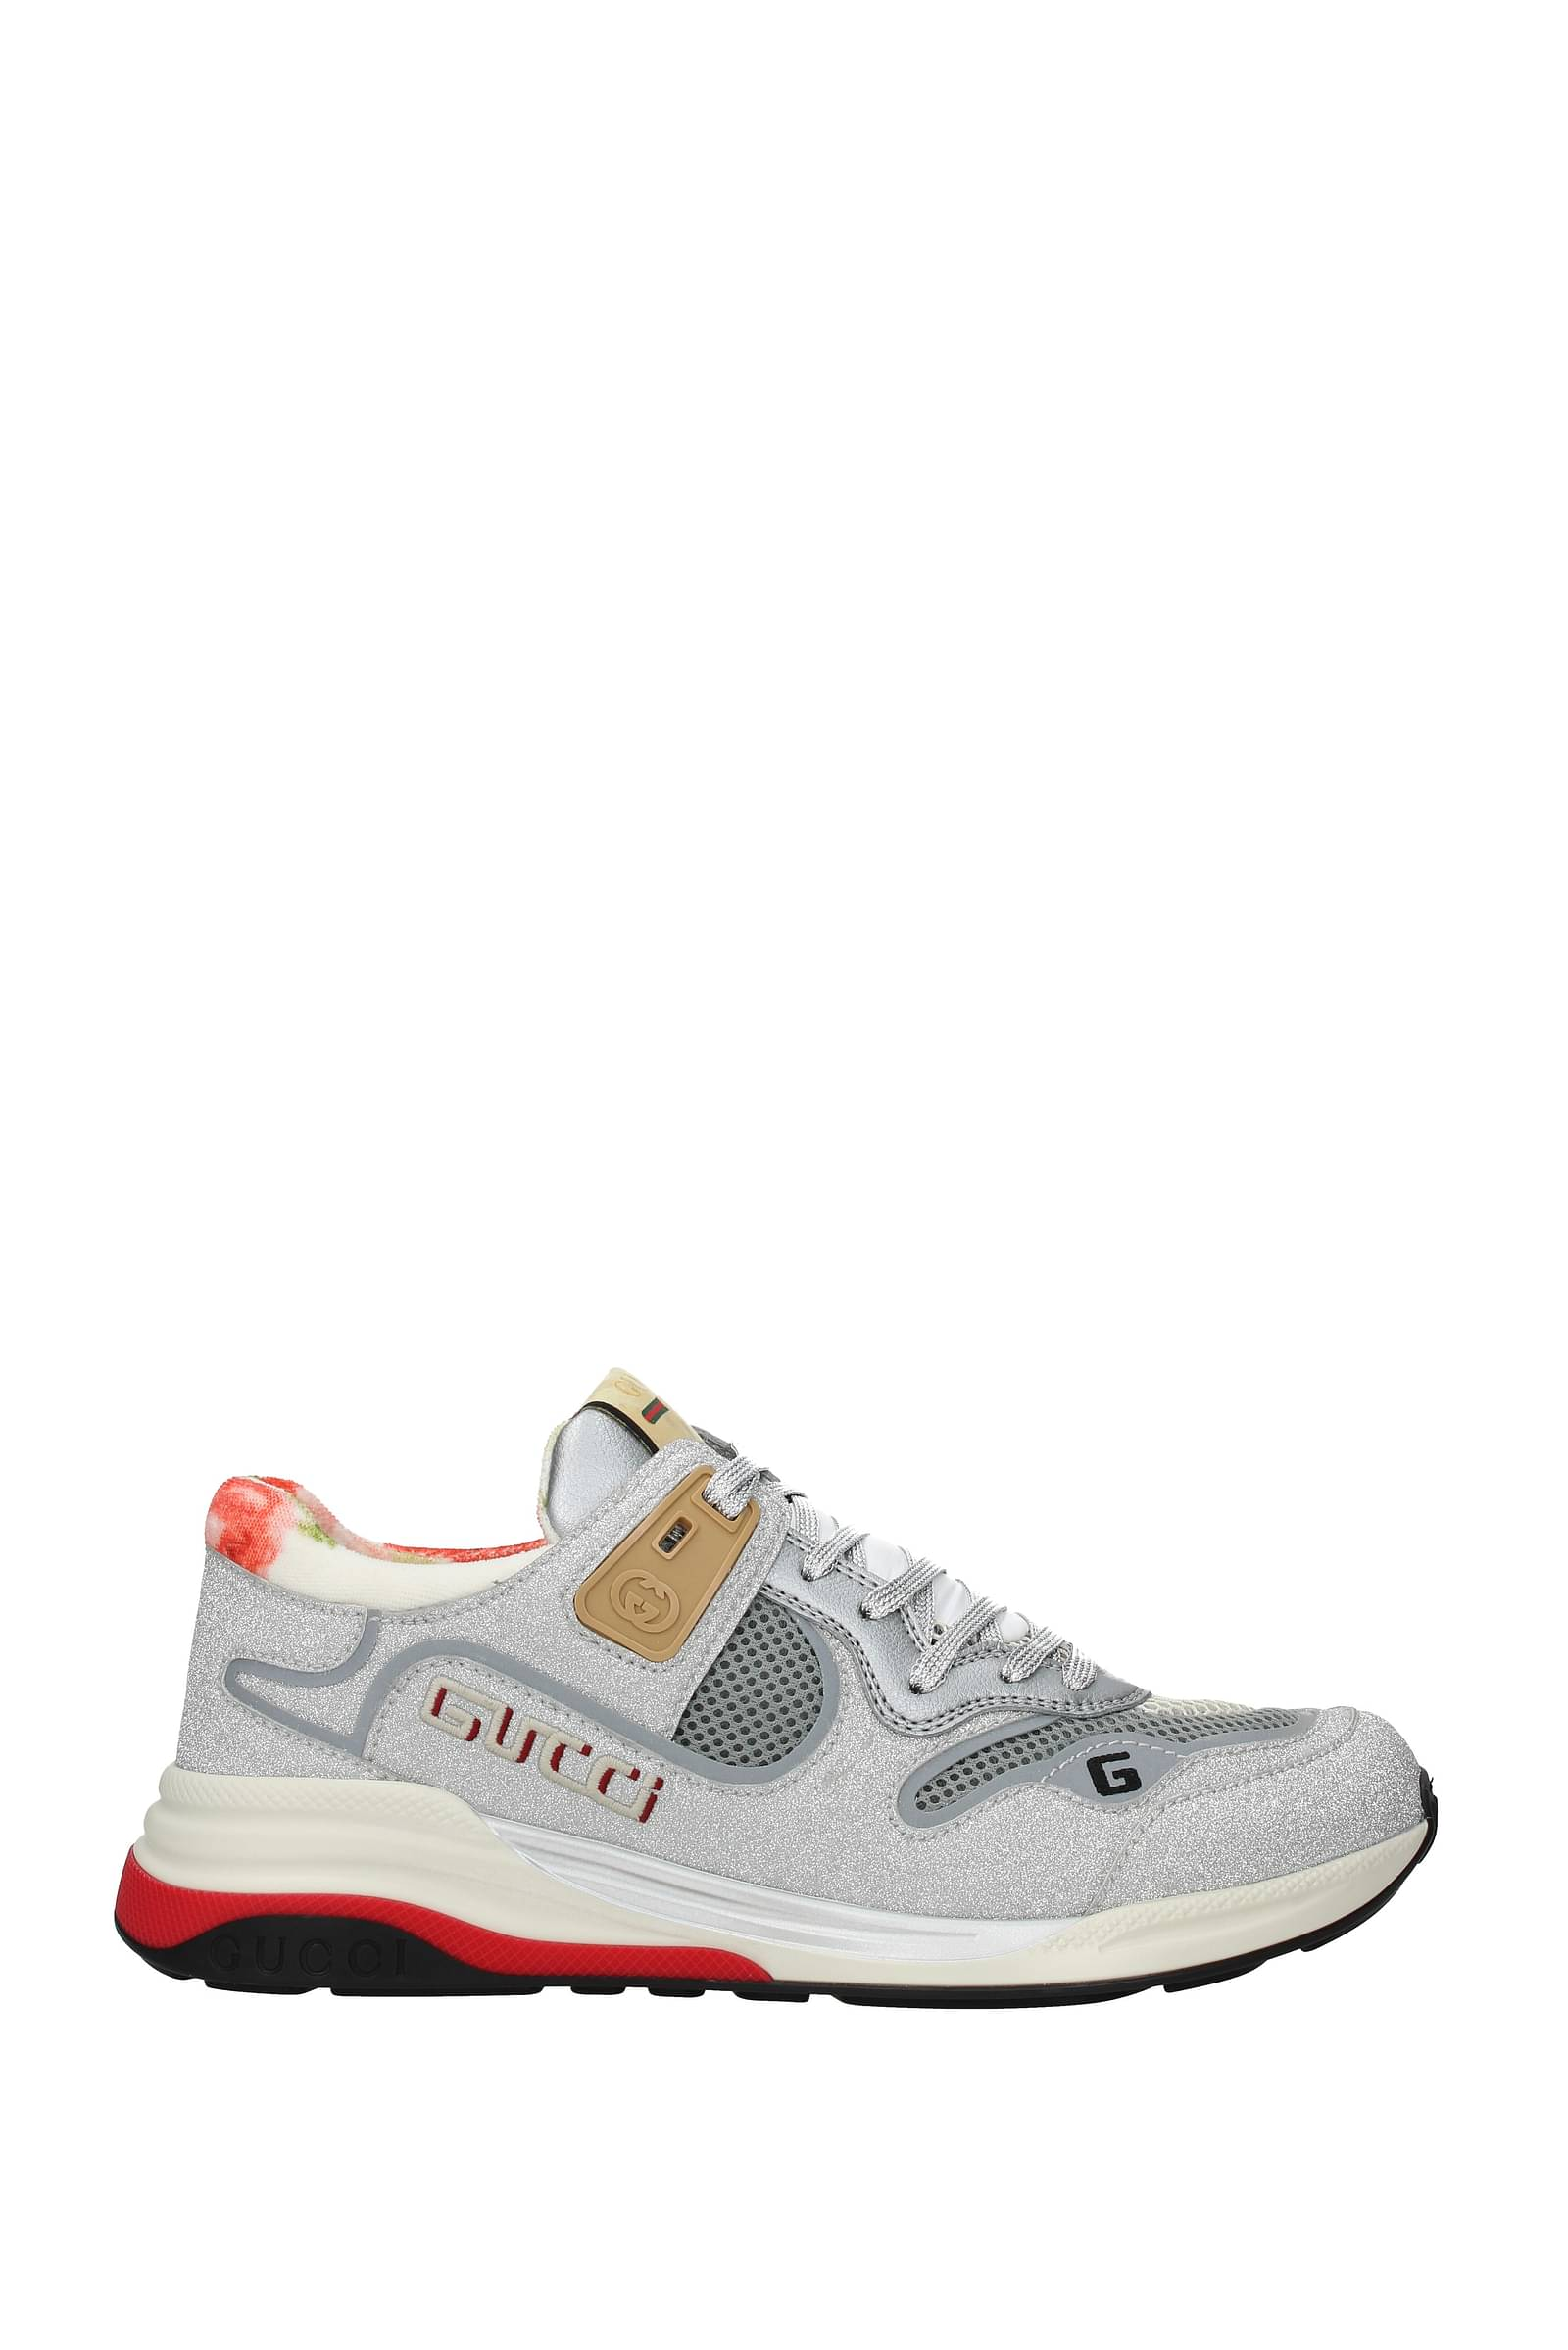 Gucci sneakers: online sale up to 50